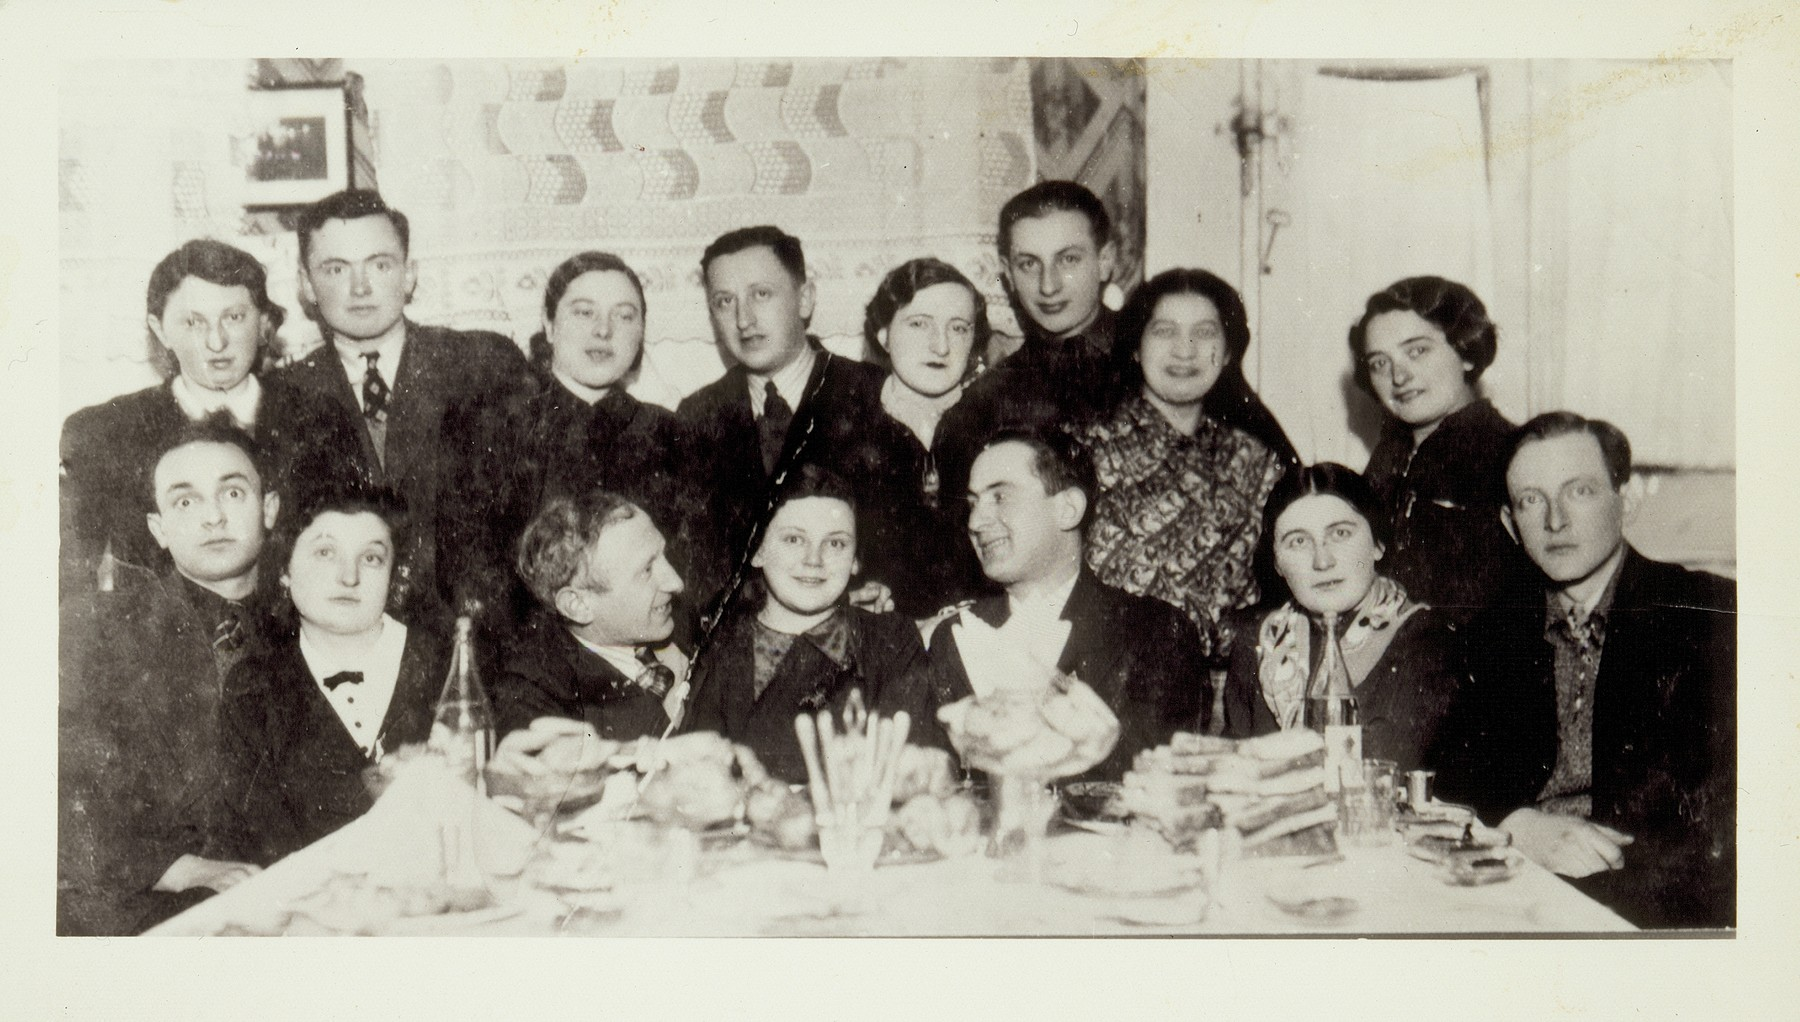 Group portrait of Jewish couples at a Saturday night party in Eisiskes.   Among those pictured are Shepshke (Shabtai) Sonenson (bottom right), Yehiel Blacharowicz (seated third from the left), Krienele Kanichowski (standing at the right), Miriam Kabacznik (standing fourth from the right) and Shoshana Katz (standing at the left).  Miriam Kabacznik survived the war in hiding; Krienele Kanichowski was killed by a Pole.  All the others died in killing actions in Eisiskes and nearby towns.